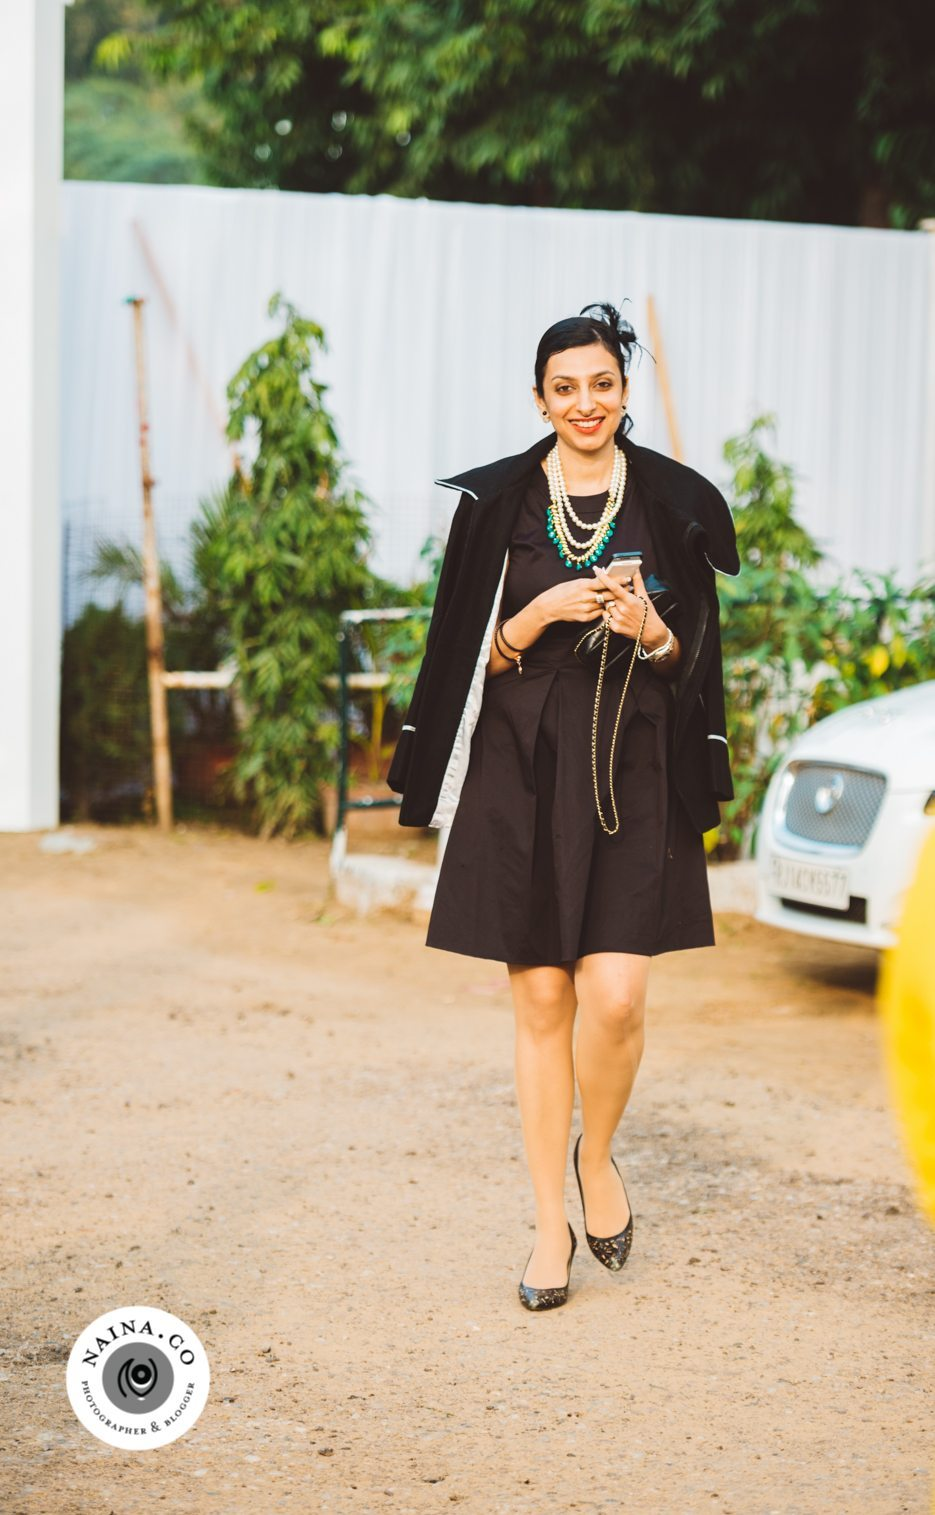 Naina.co-Raconteuse-Visuelle-Photographer-Blogger-Storyteller-Luxury-Lifestyle-January-2015-EyesForStreetStyle-StRegisPolo-Jaipur